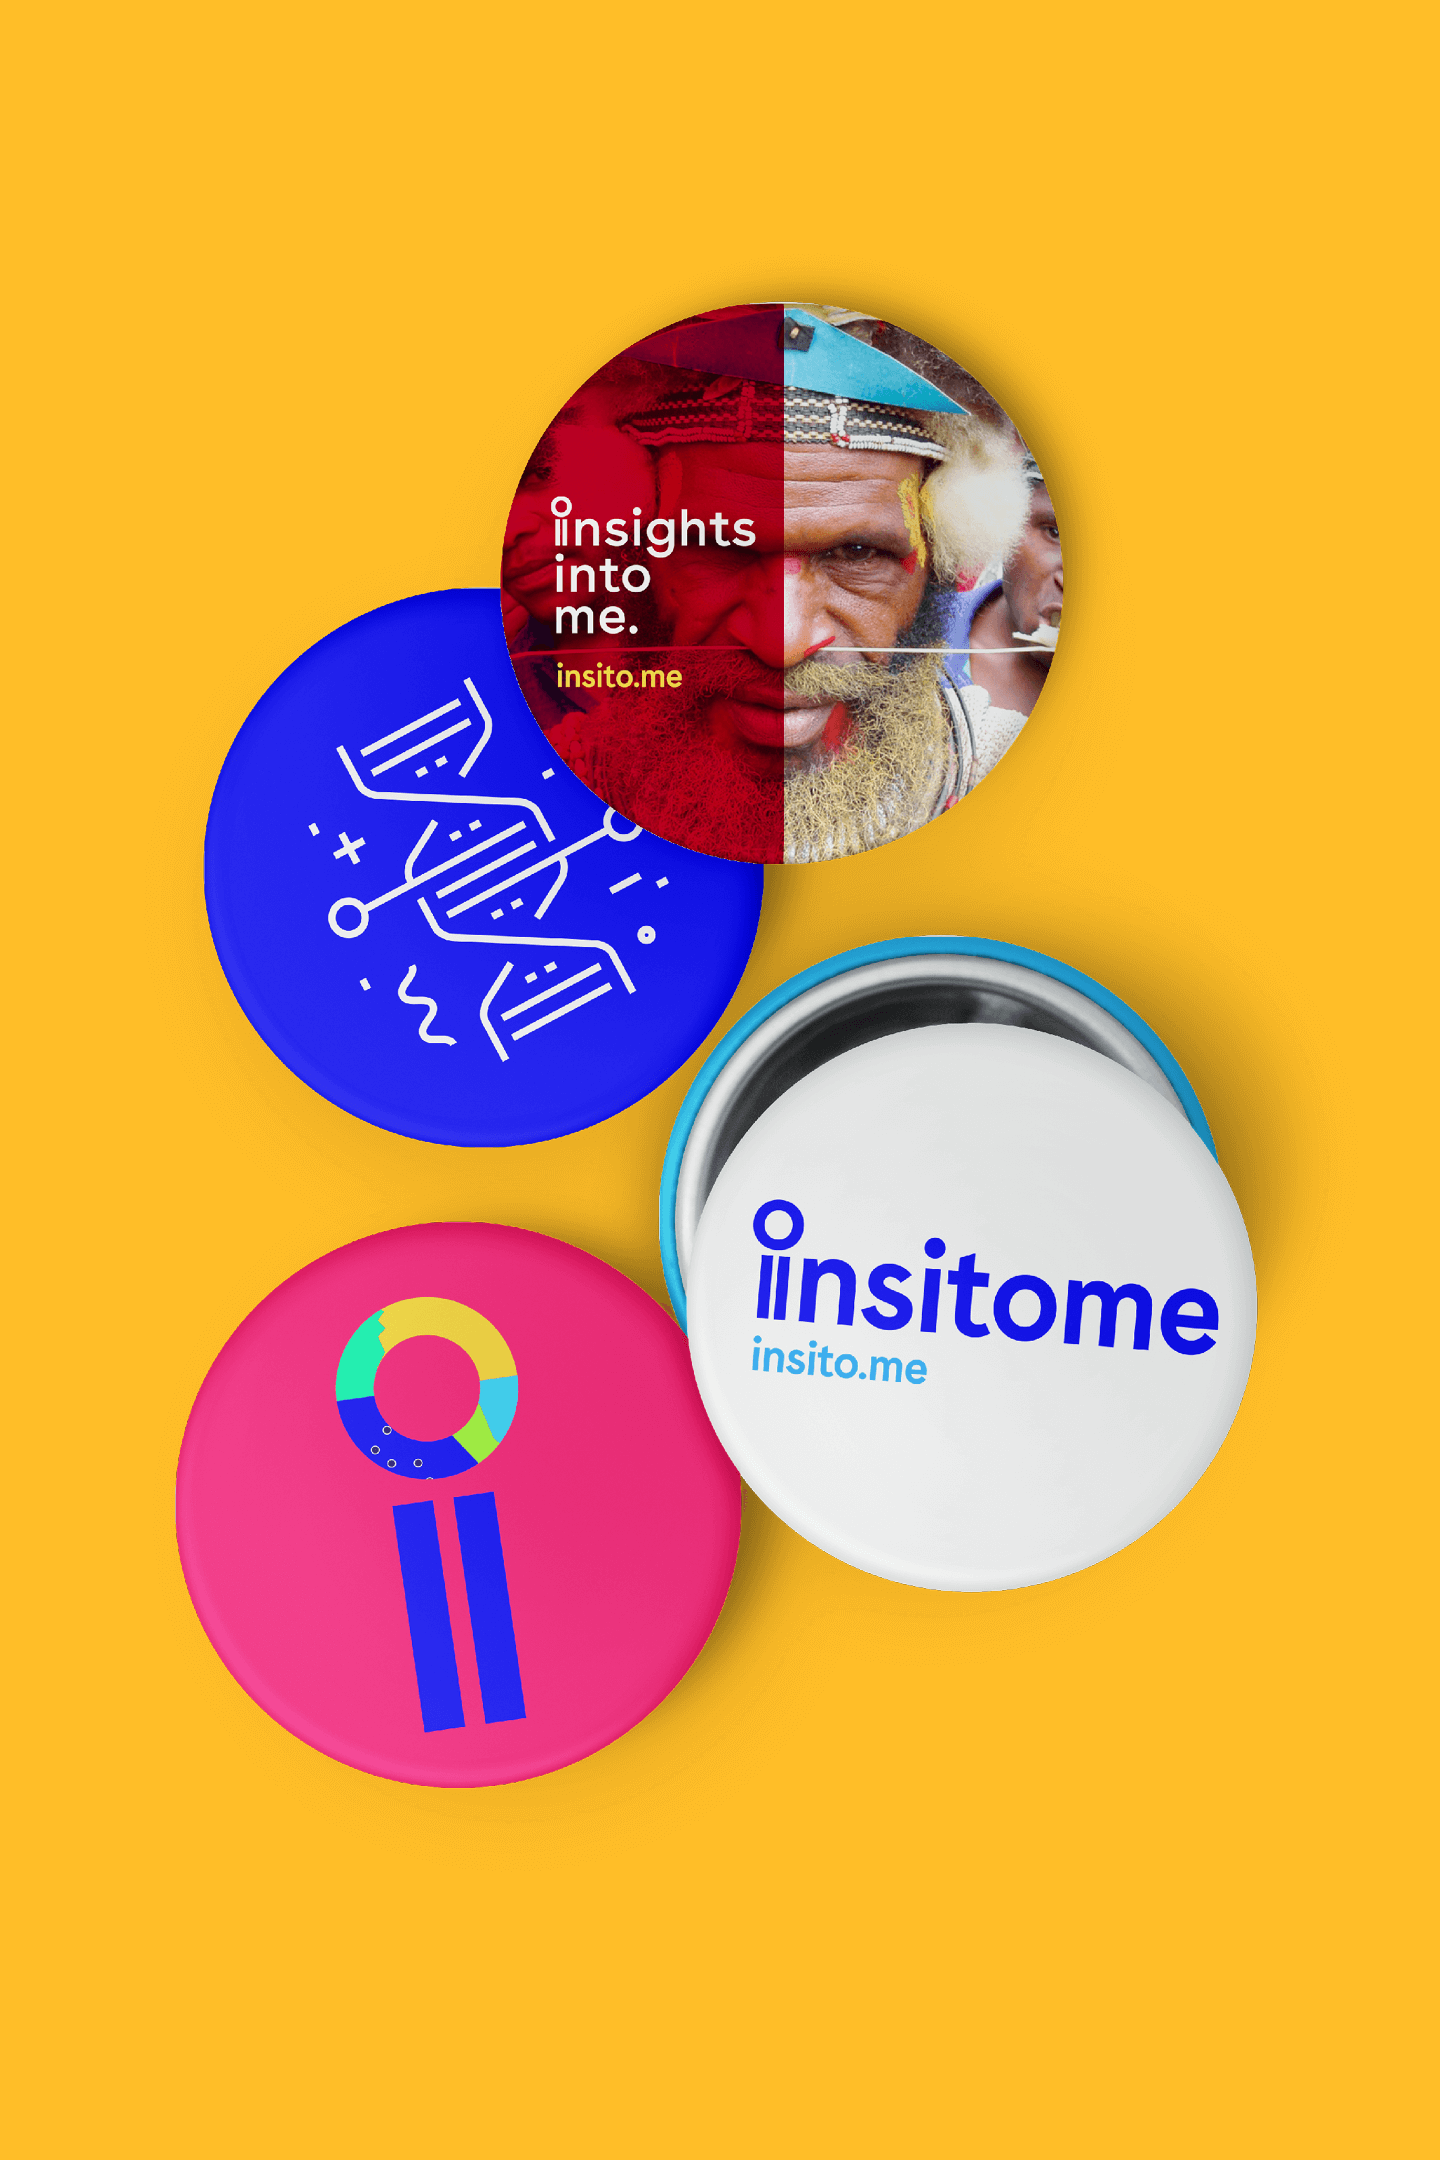 Insitome pins